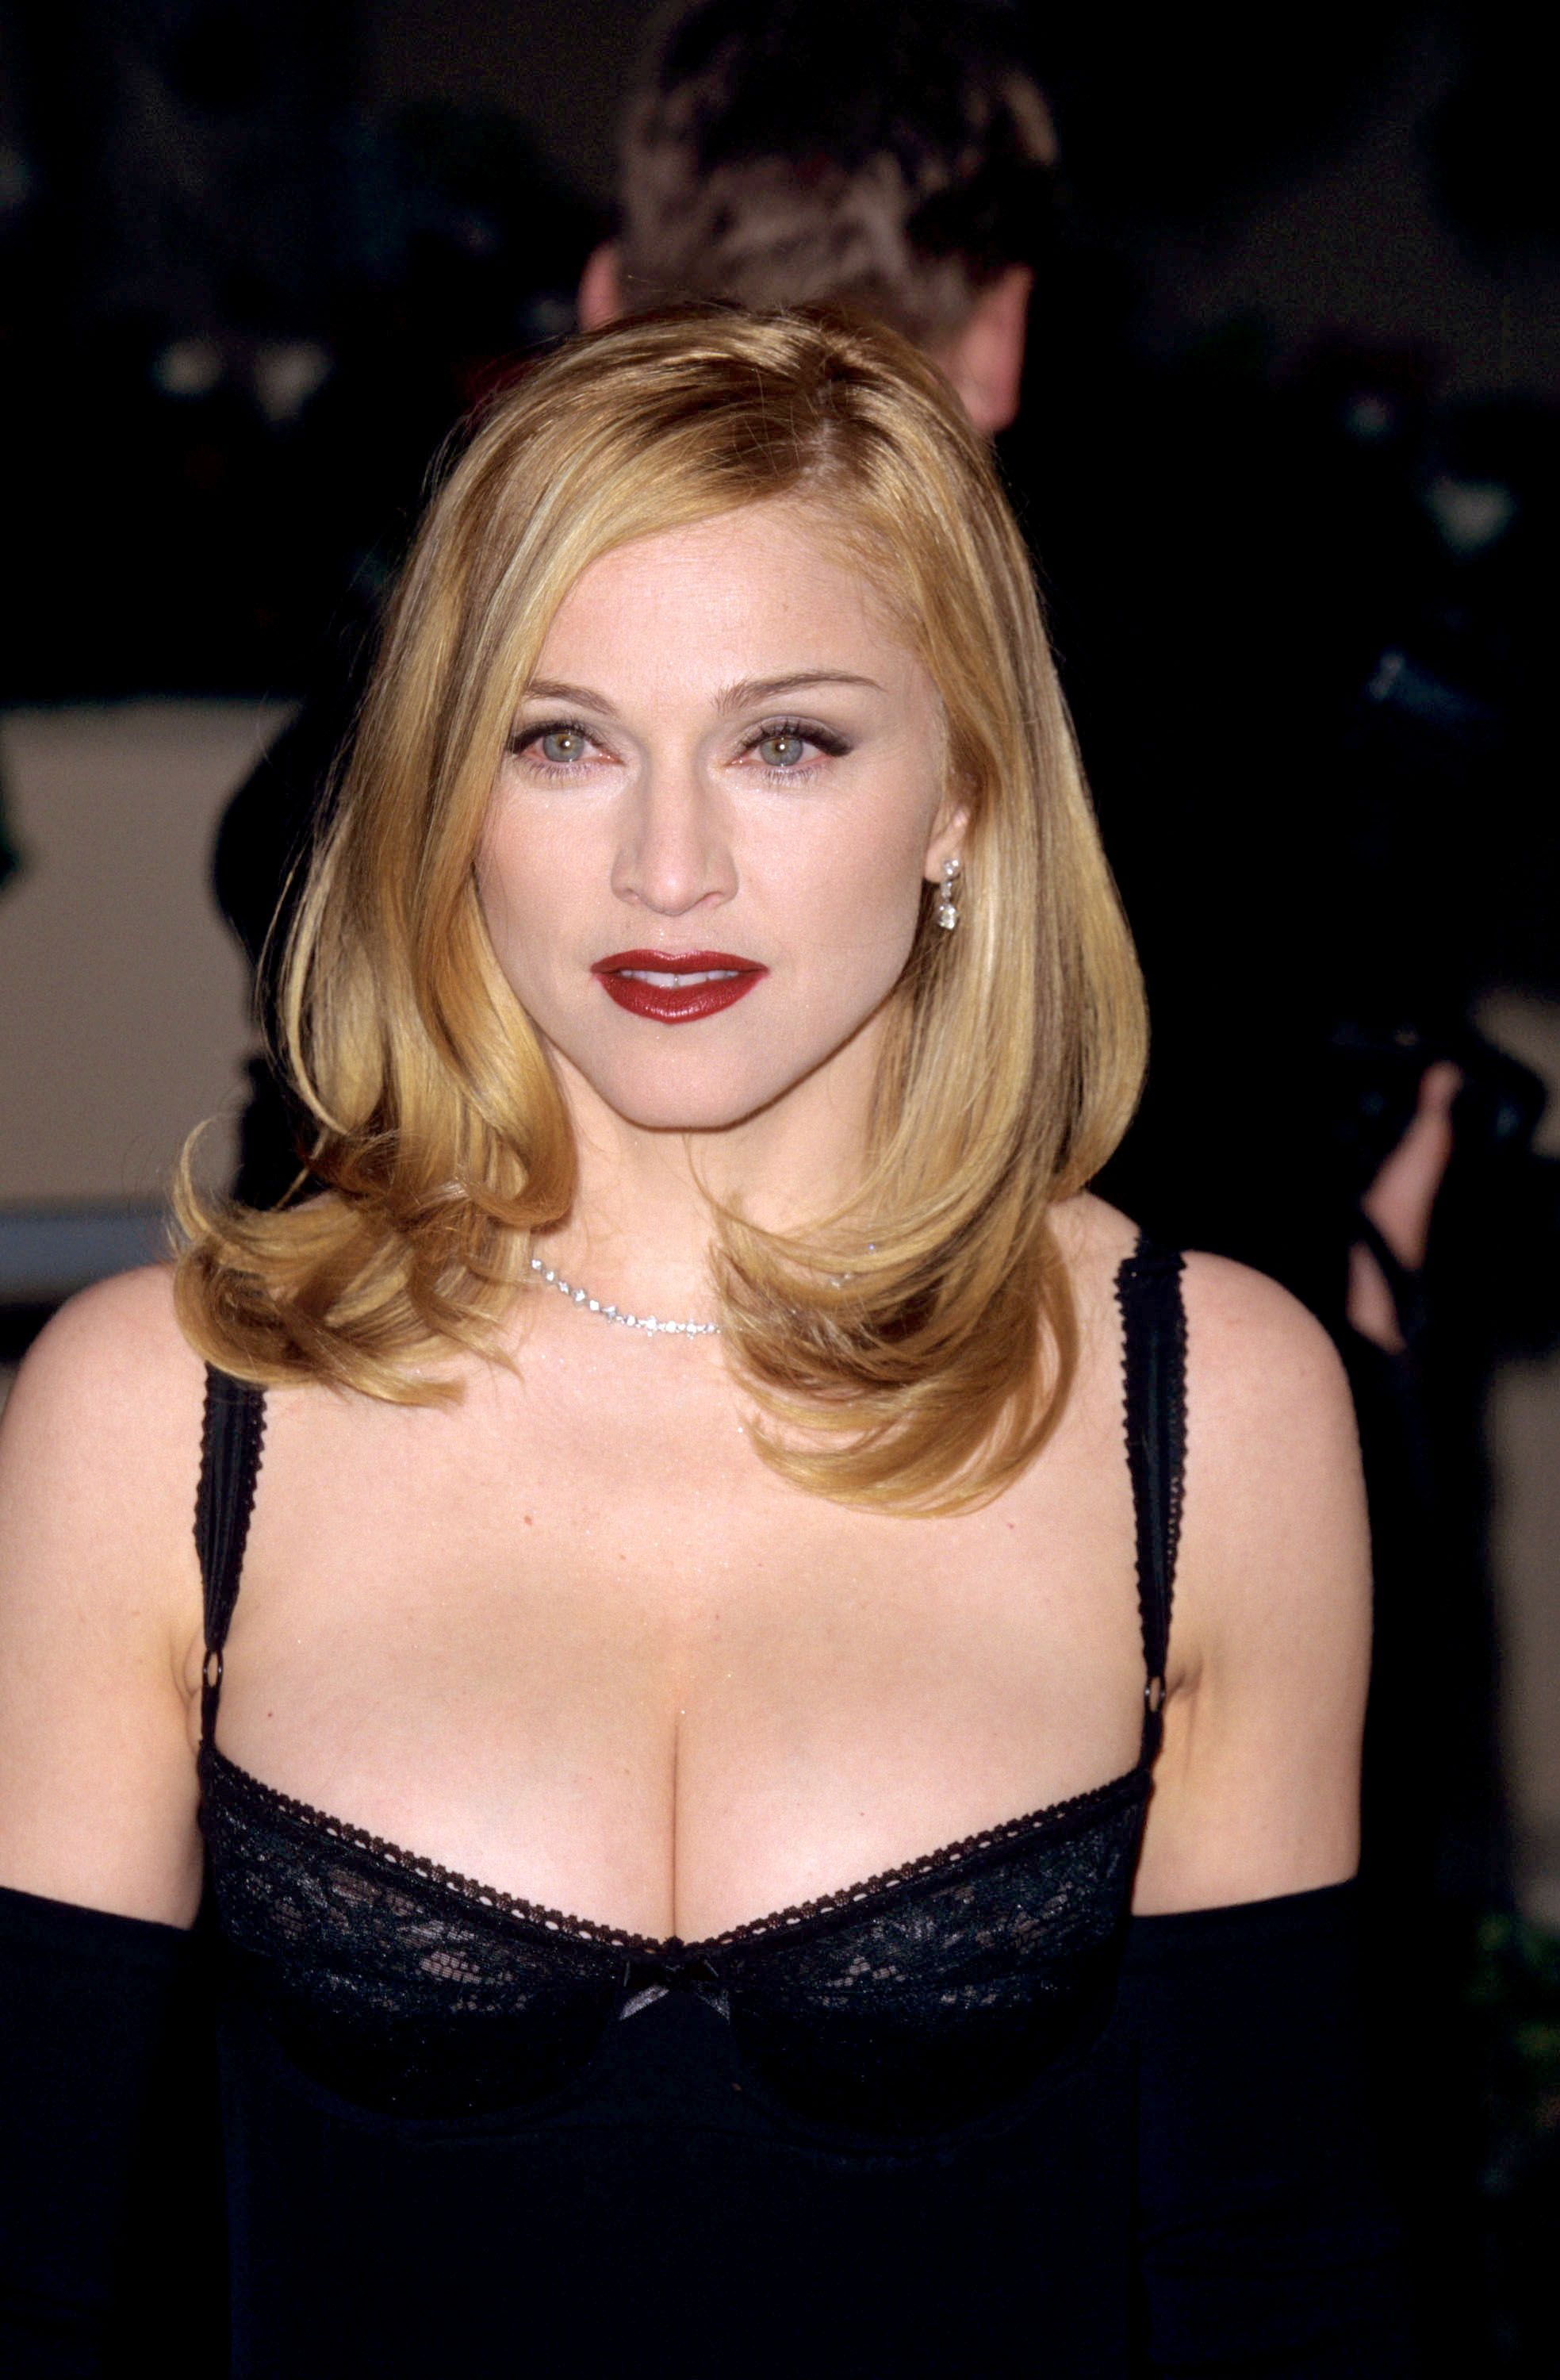 10 unknown facts about Madonna